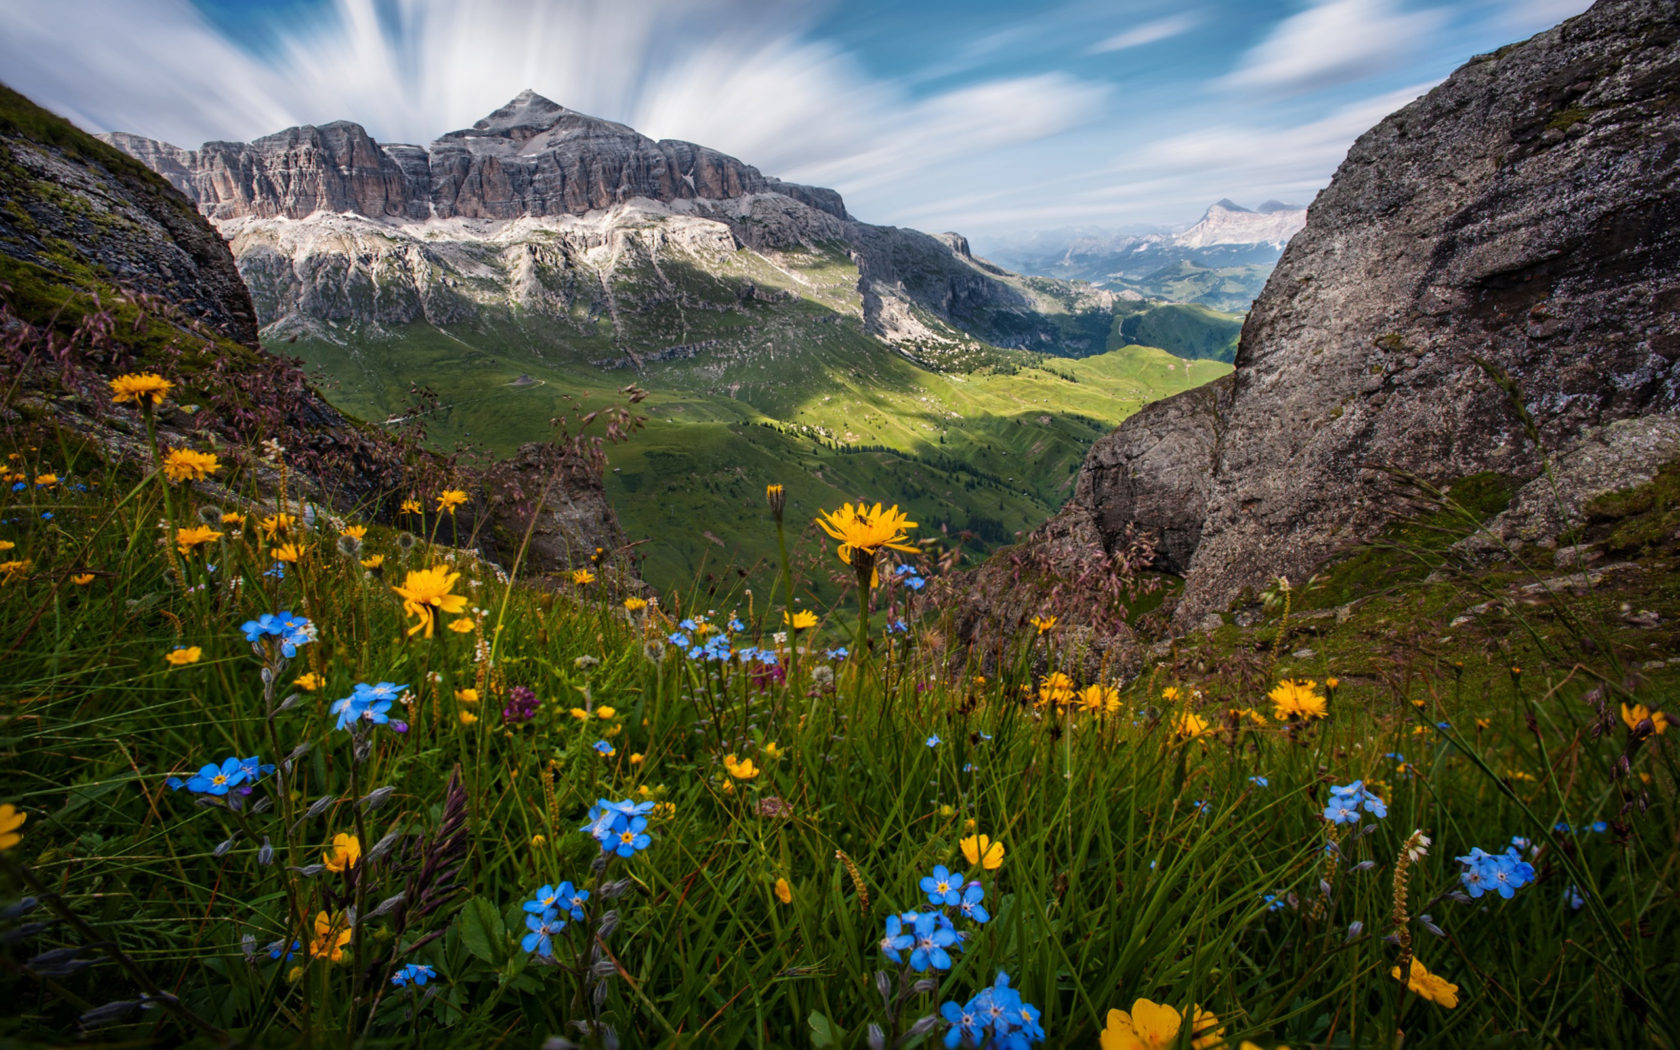 Wallpaper Desktop Background Cars Flowers Of The Dolomites Italy Nature Landscape Wallpaper